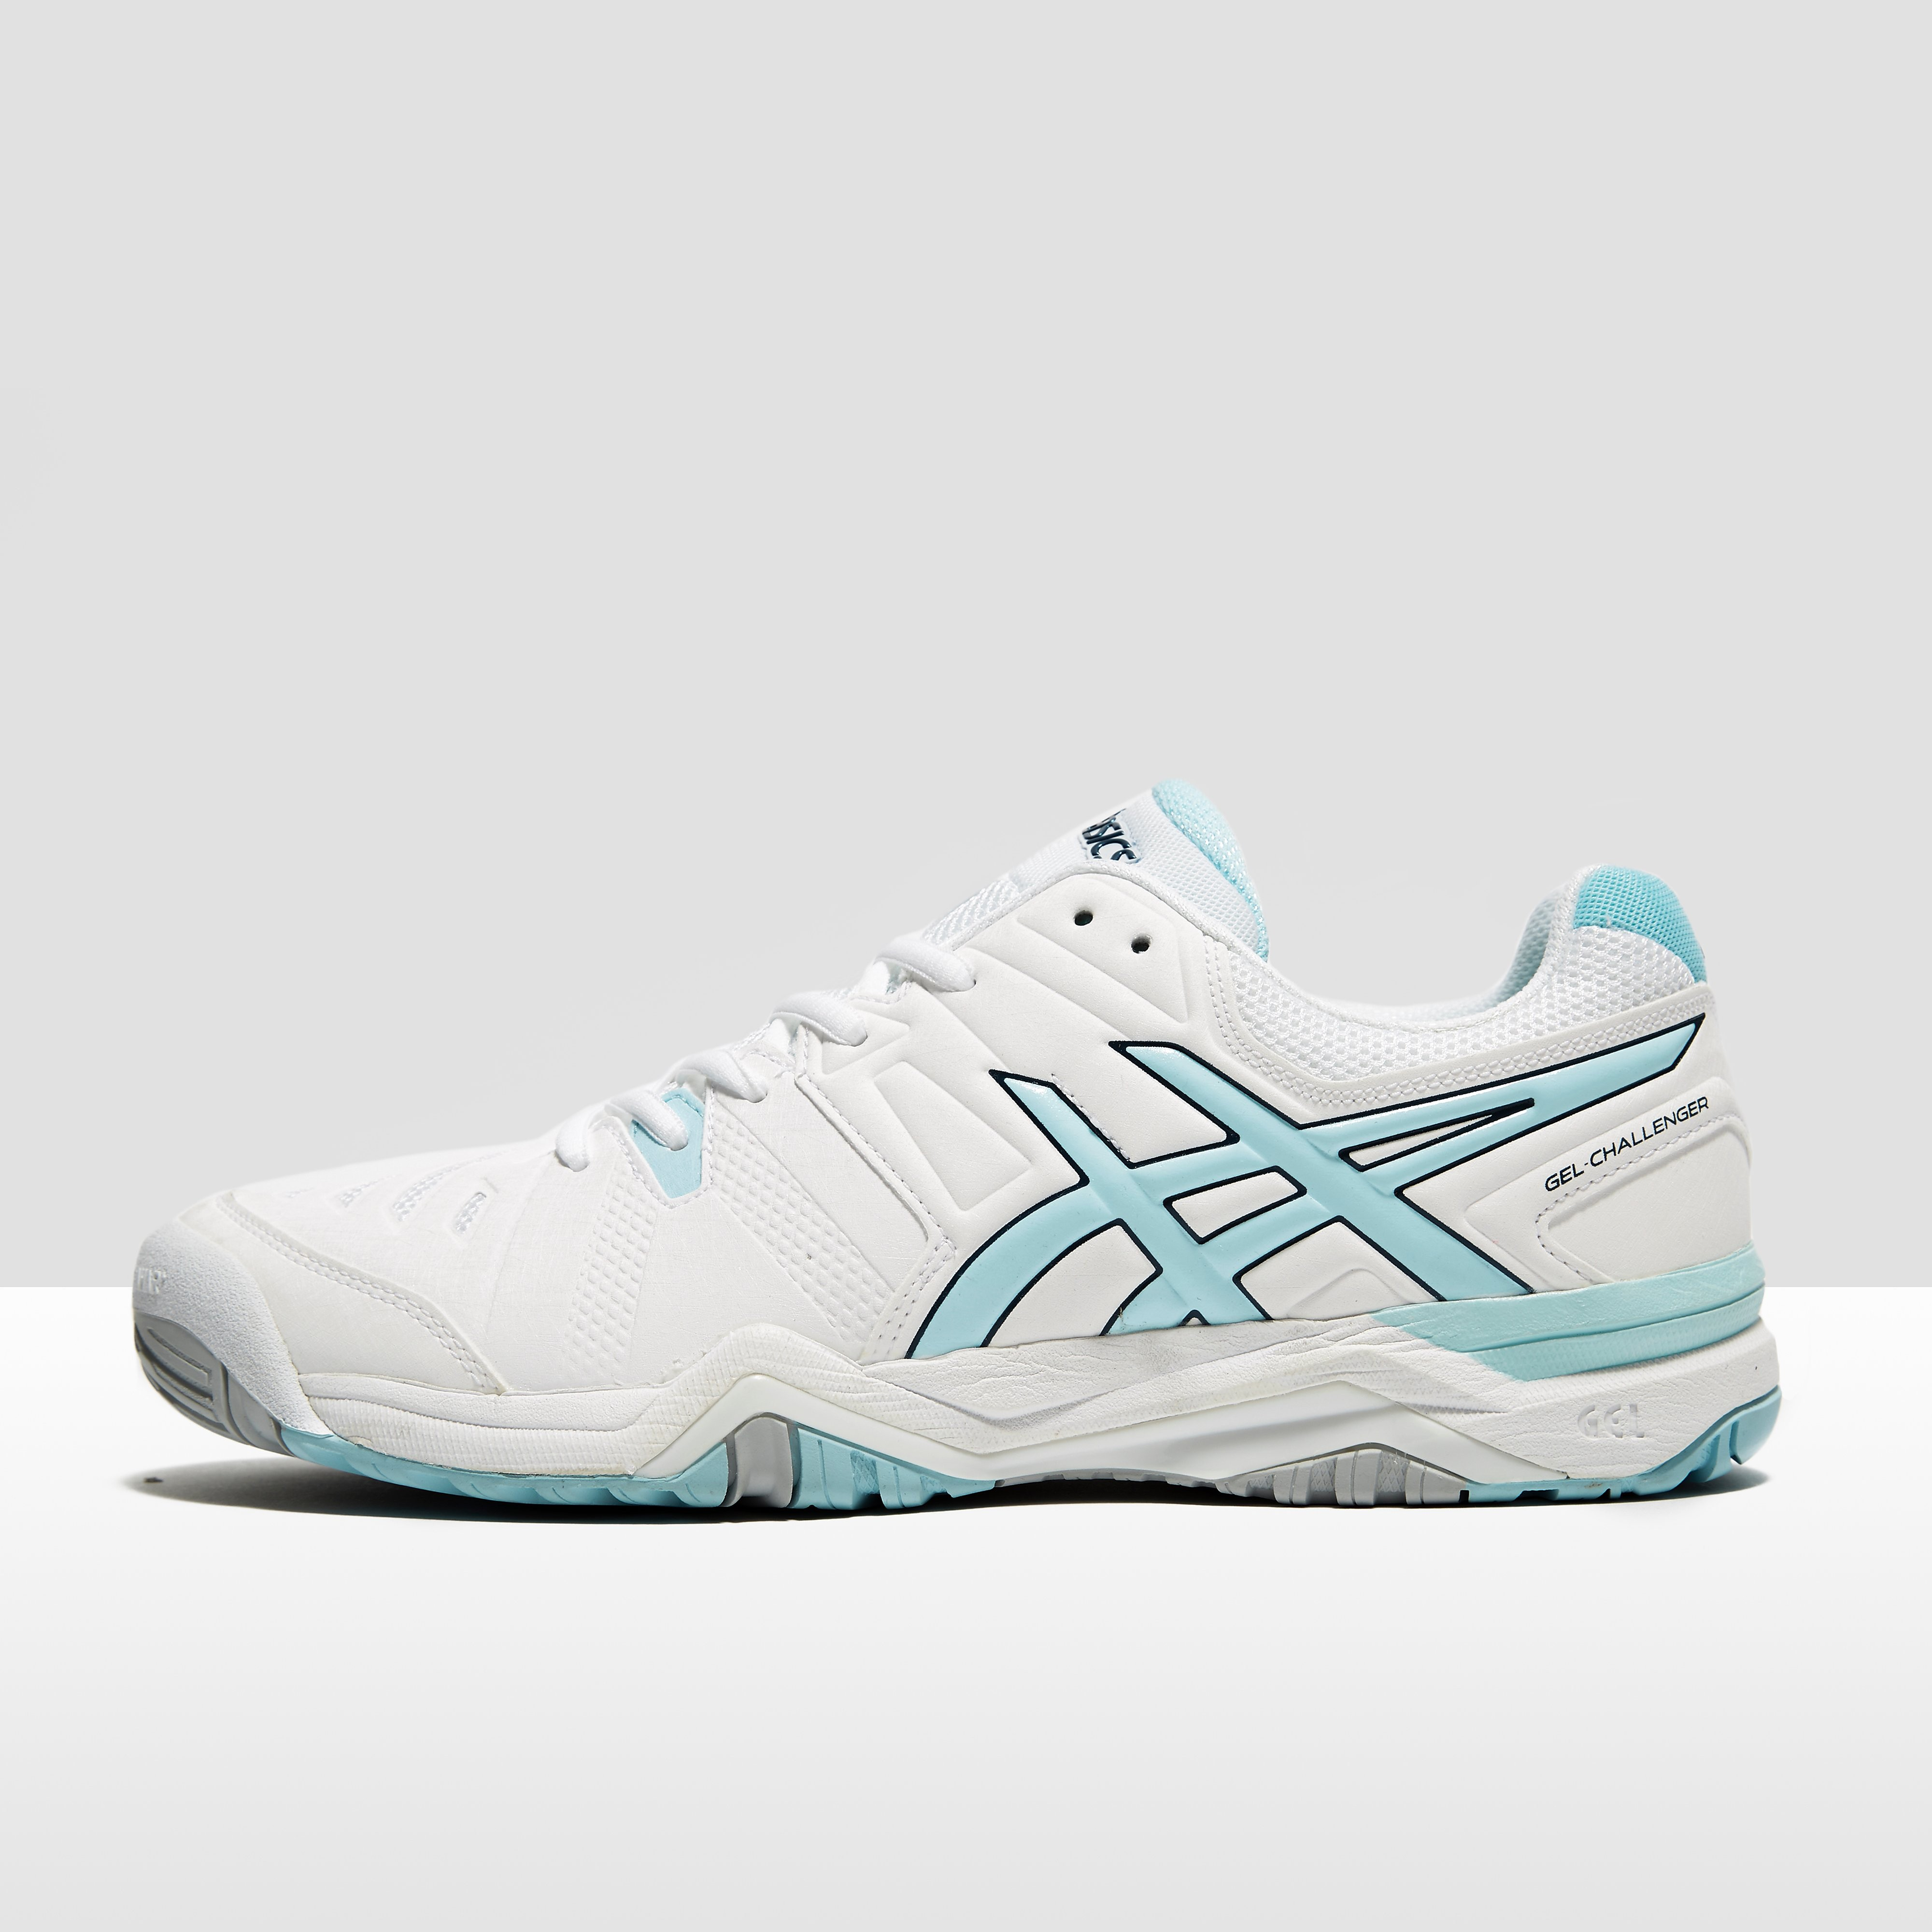 Asics Women's GEL-Challenger 10 Tennis Shoes